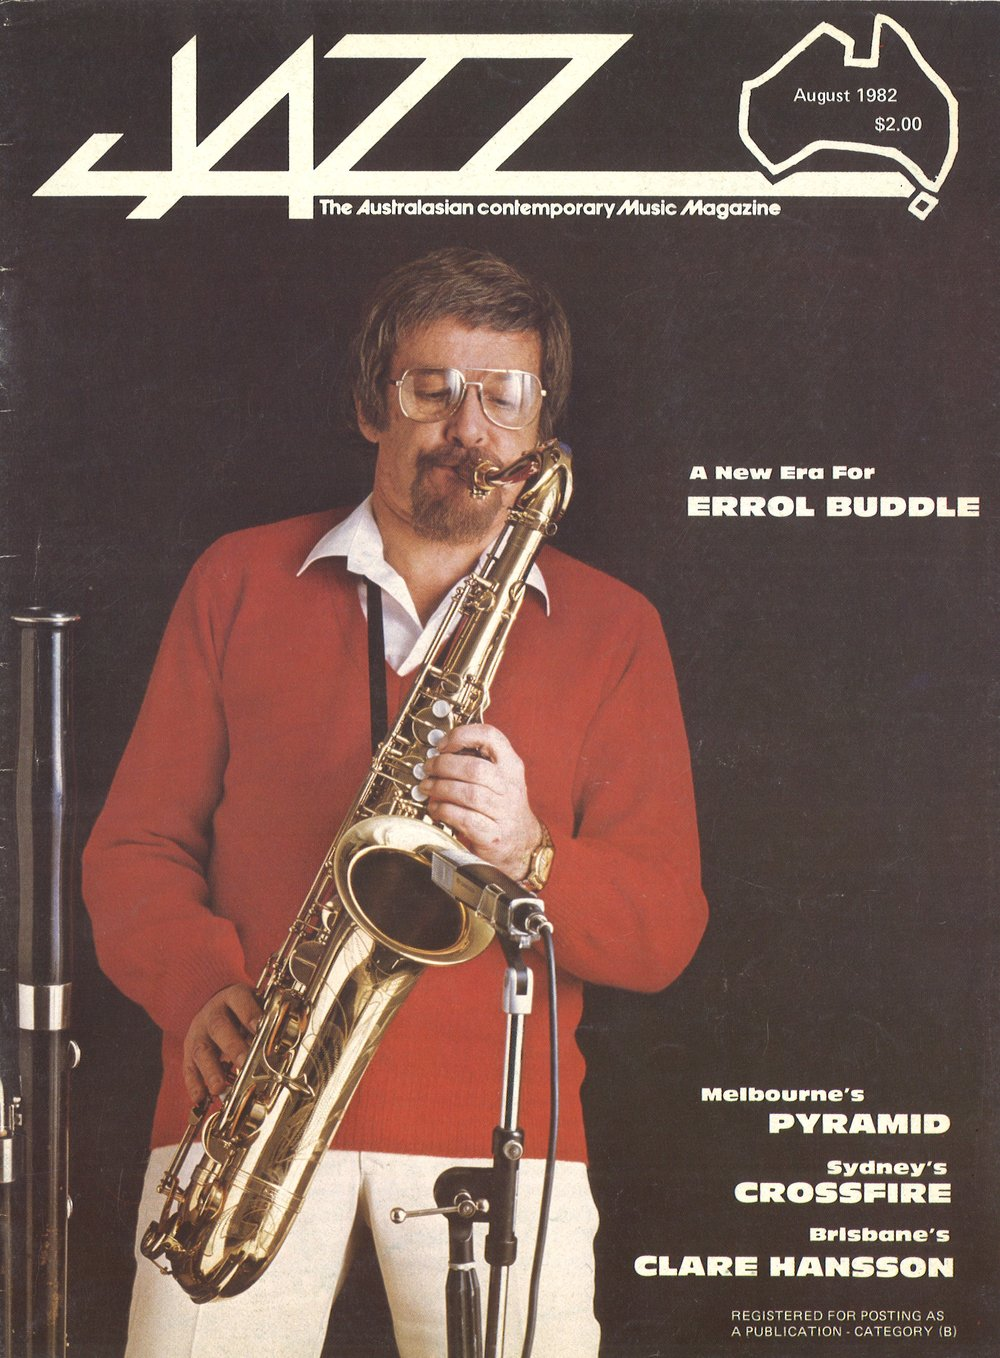 Errol Buddle on the cover of Jazz Magazine in 1982